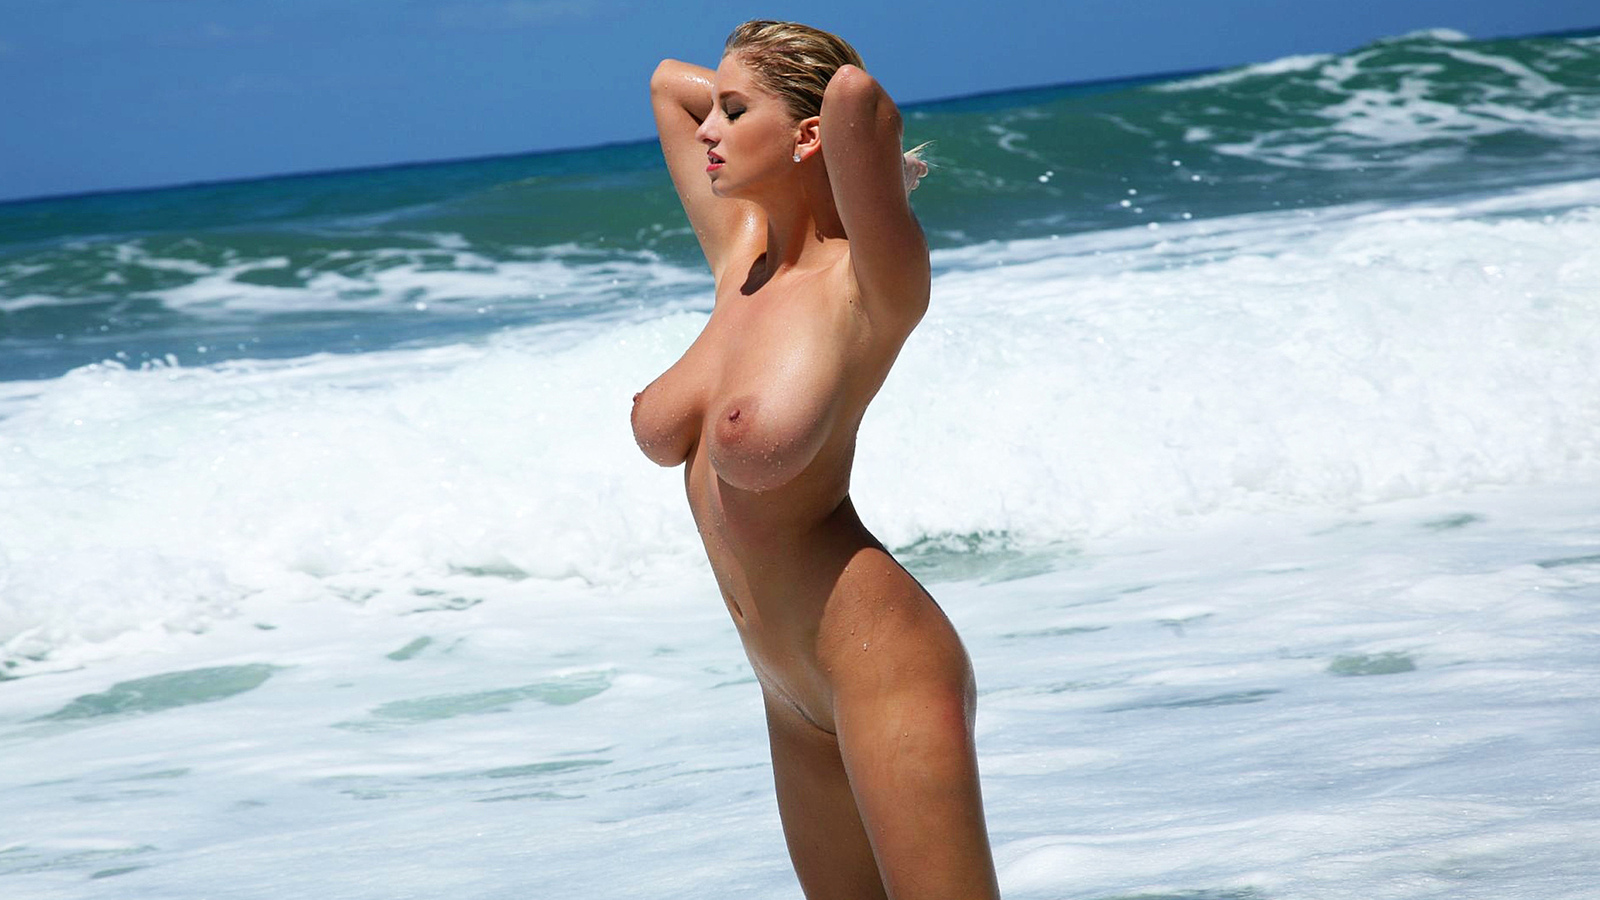 sexy-naked-tits-female-lifeguards-justin-b-full-sex-nude